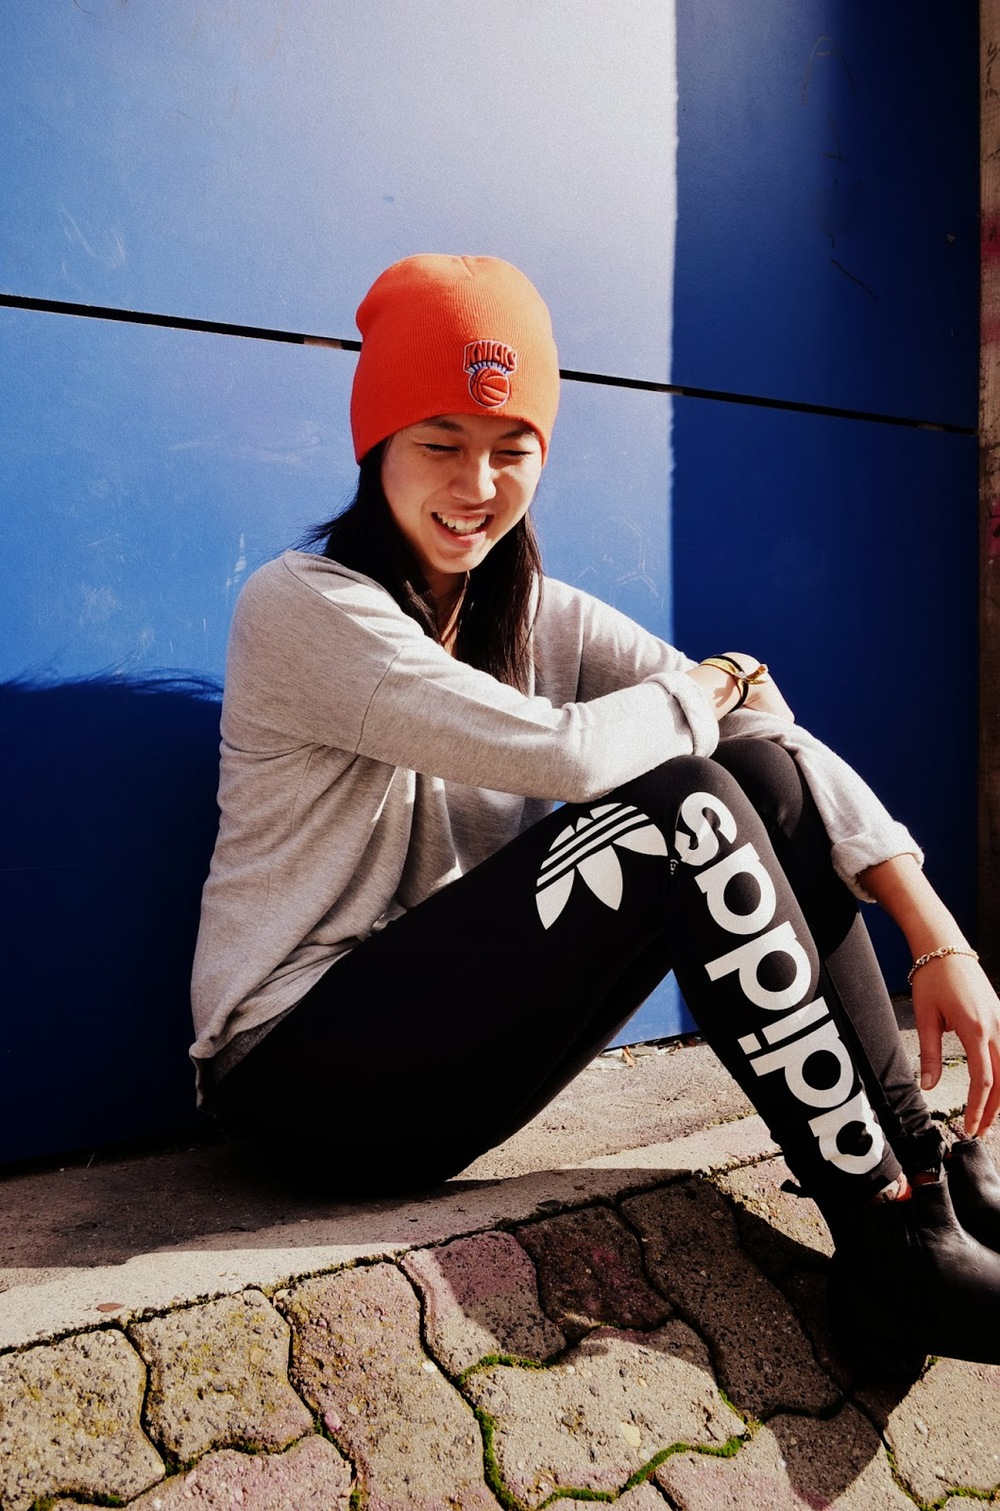 NYC Knicks Beanie, Grey Sweater by H&M, adidas Originals F/W'13 Leggings, Goertz Chelsea Boots.